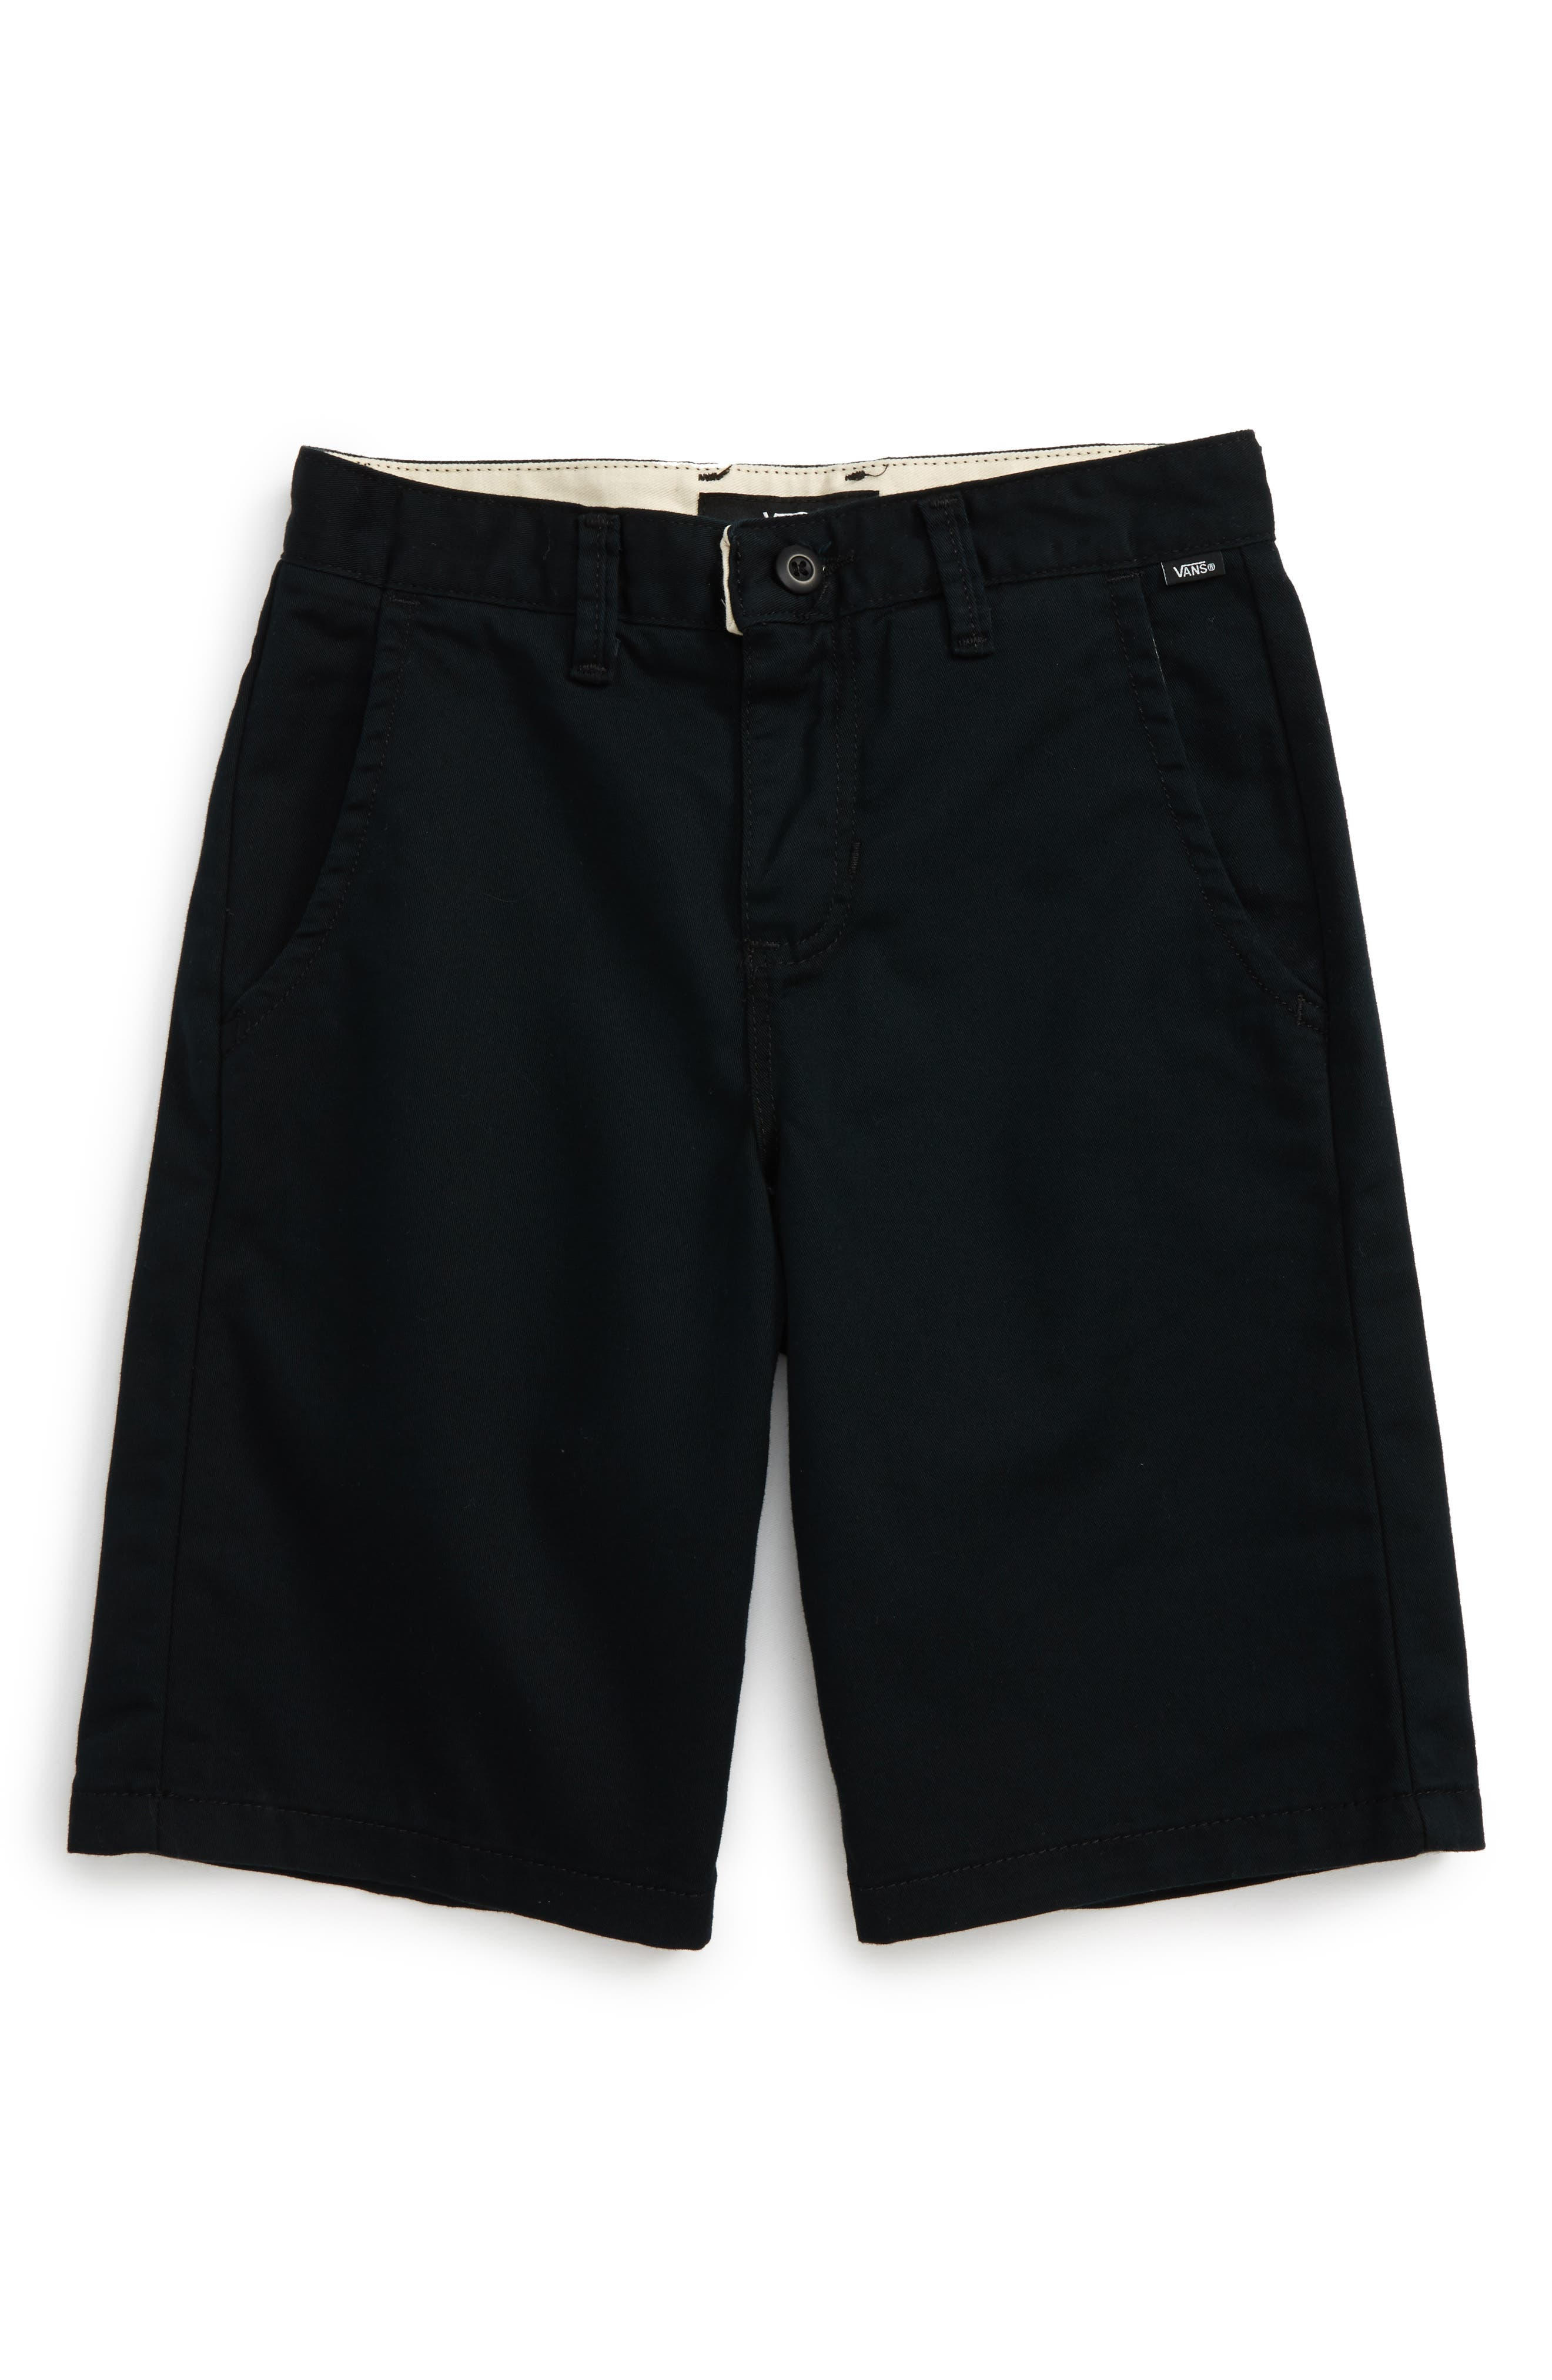 Authentic Walk Shorts,                             Main thumbnail 1, color,                             001